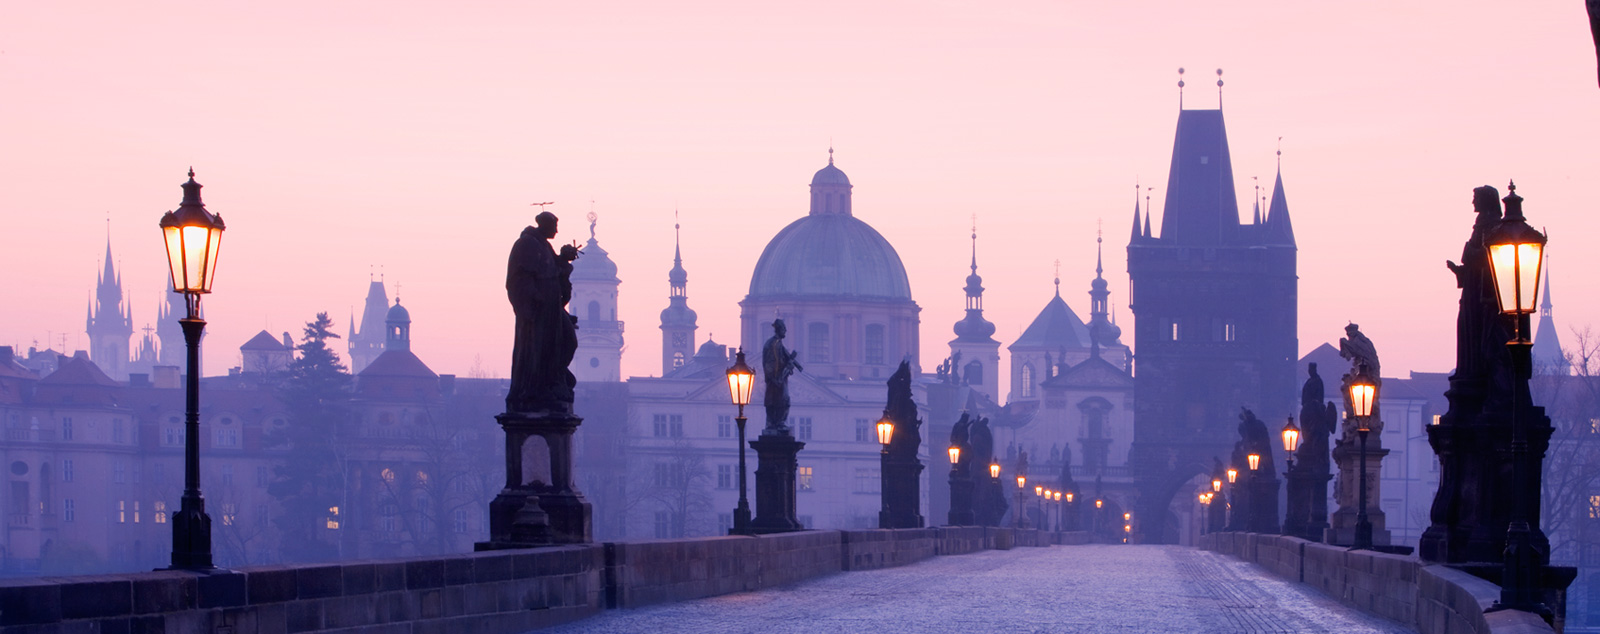 Twilight on a bridge in Prague imbues a purple haze across the towers and spires of the city